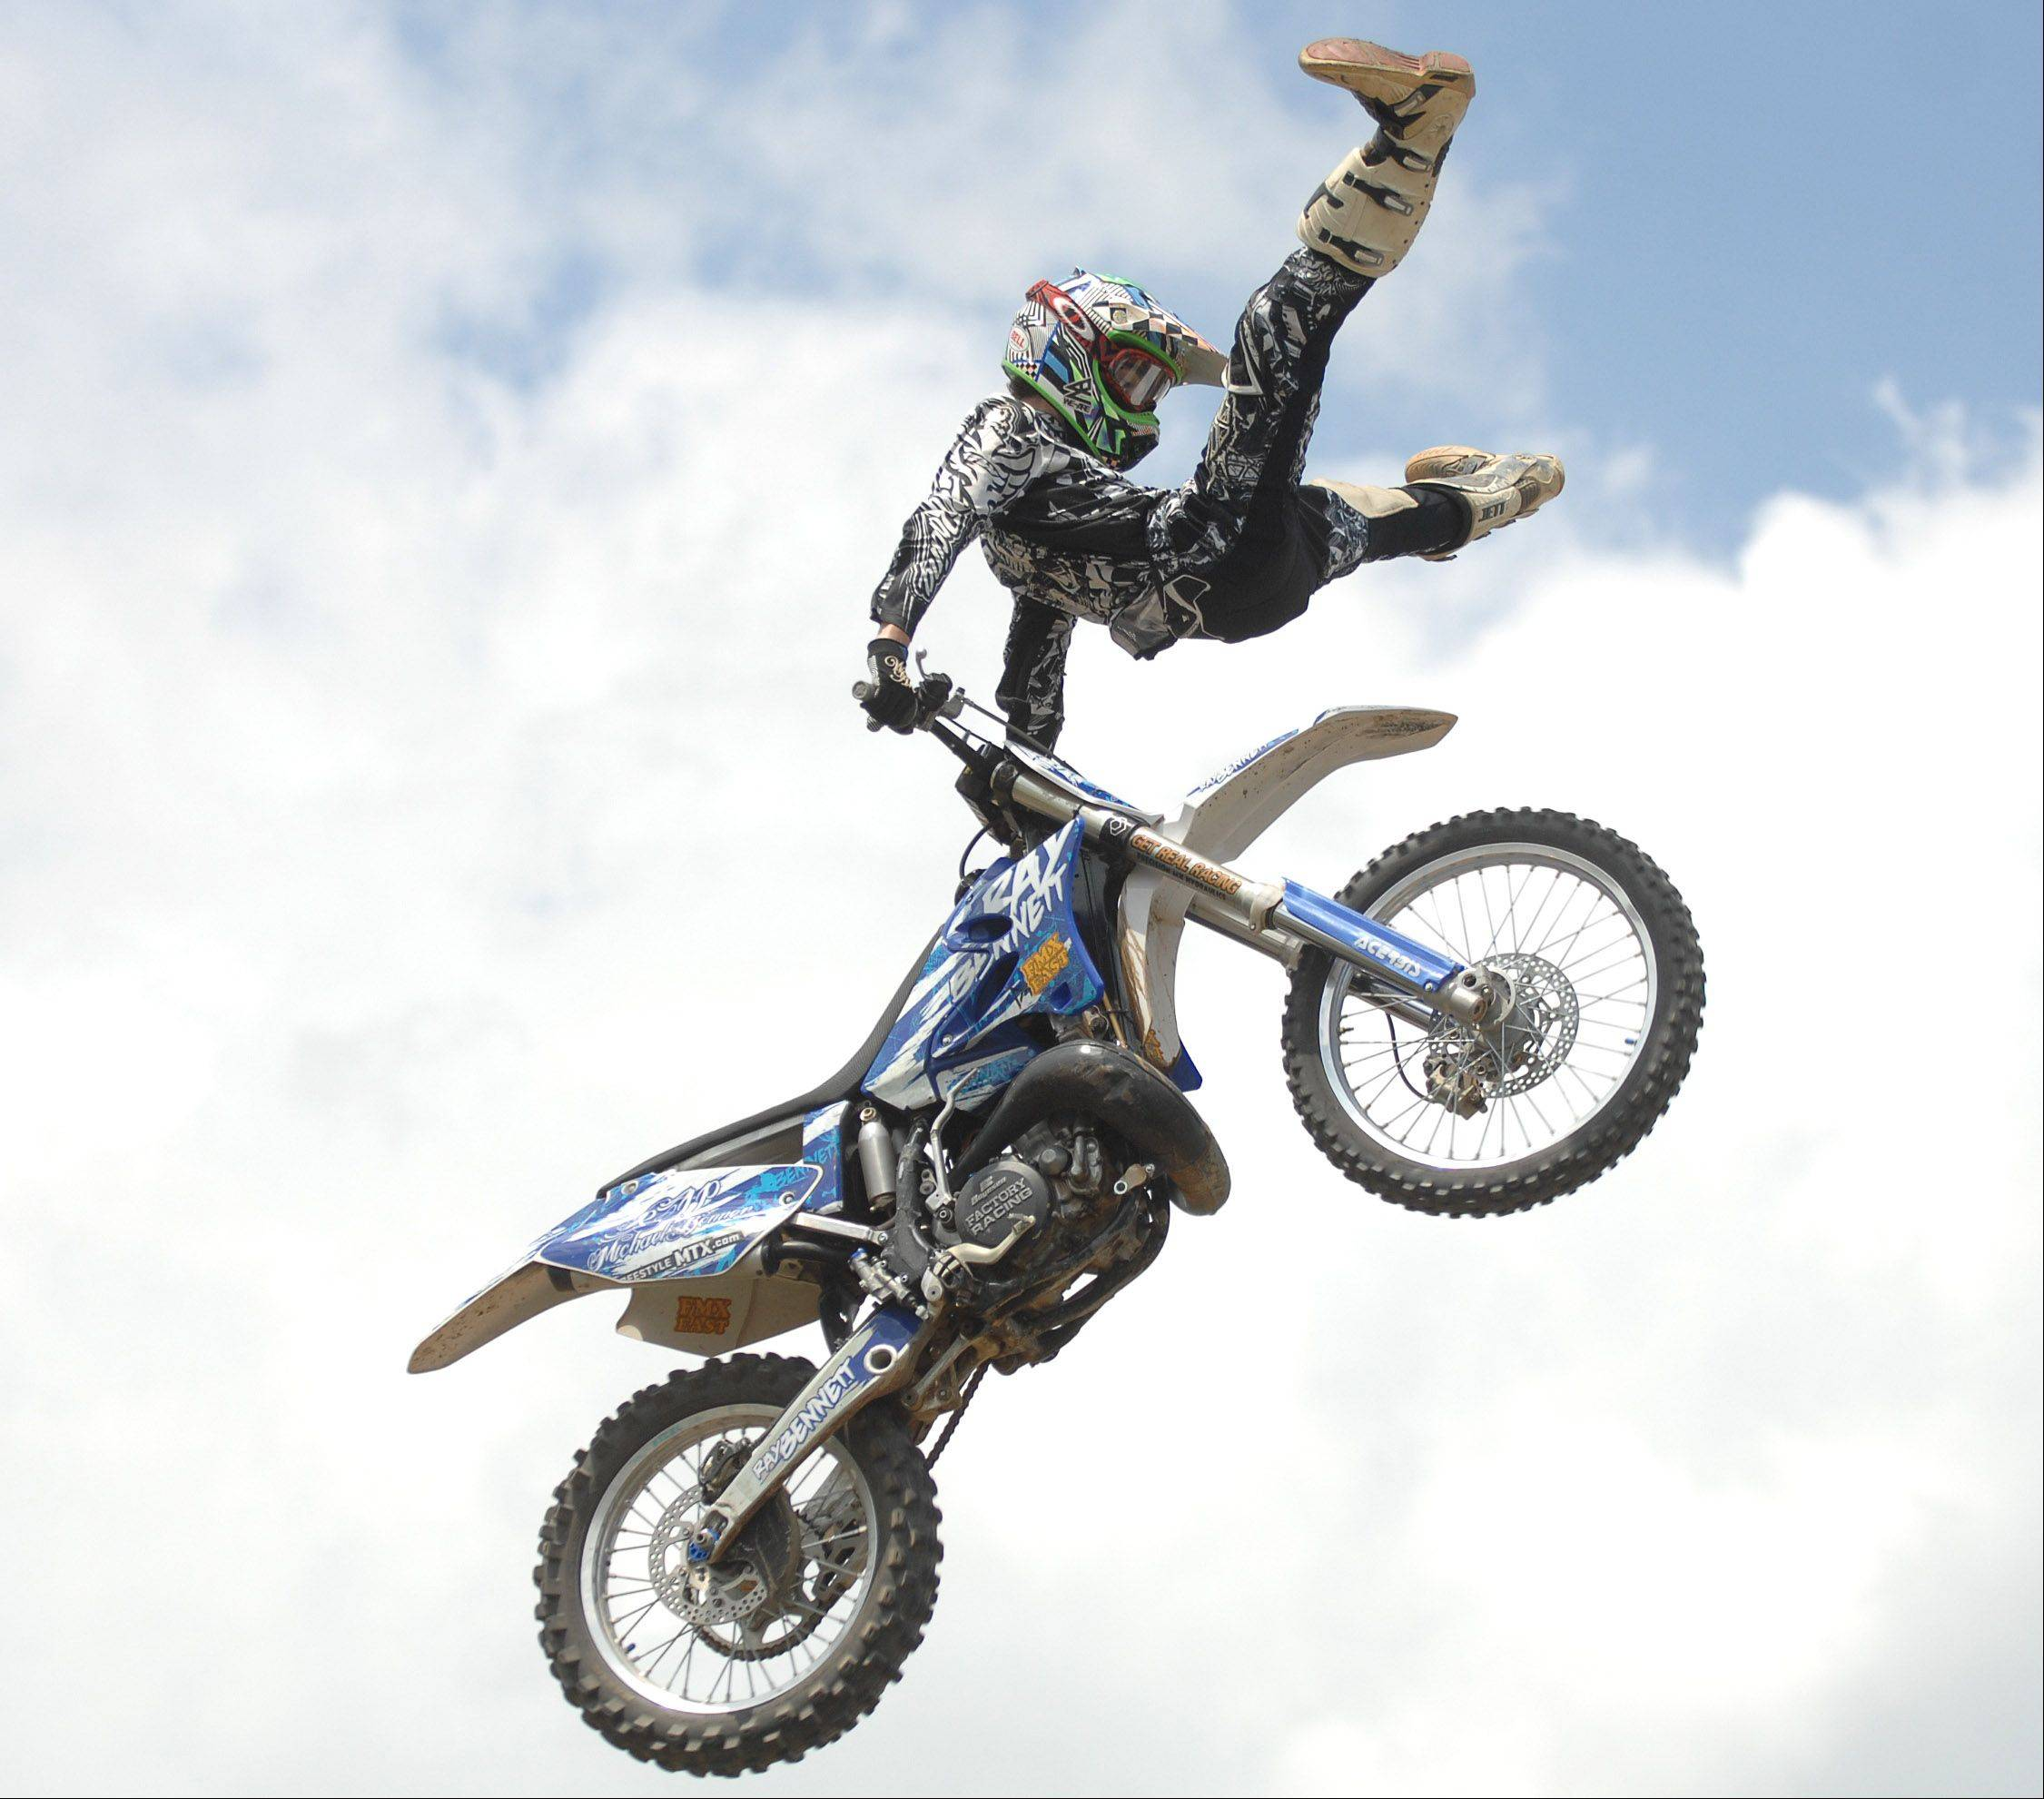 A dirt bike competitor takes to the skies at the DuPage County Fair in Wheaton.